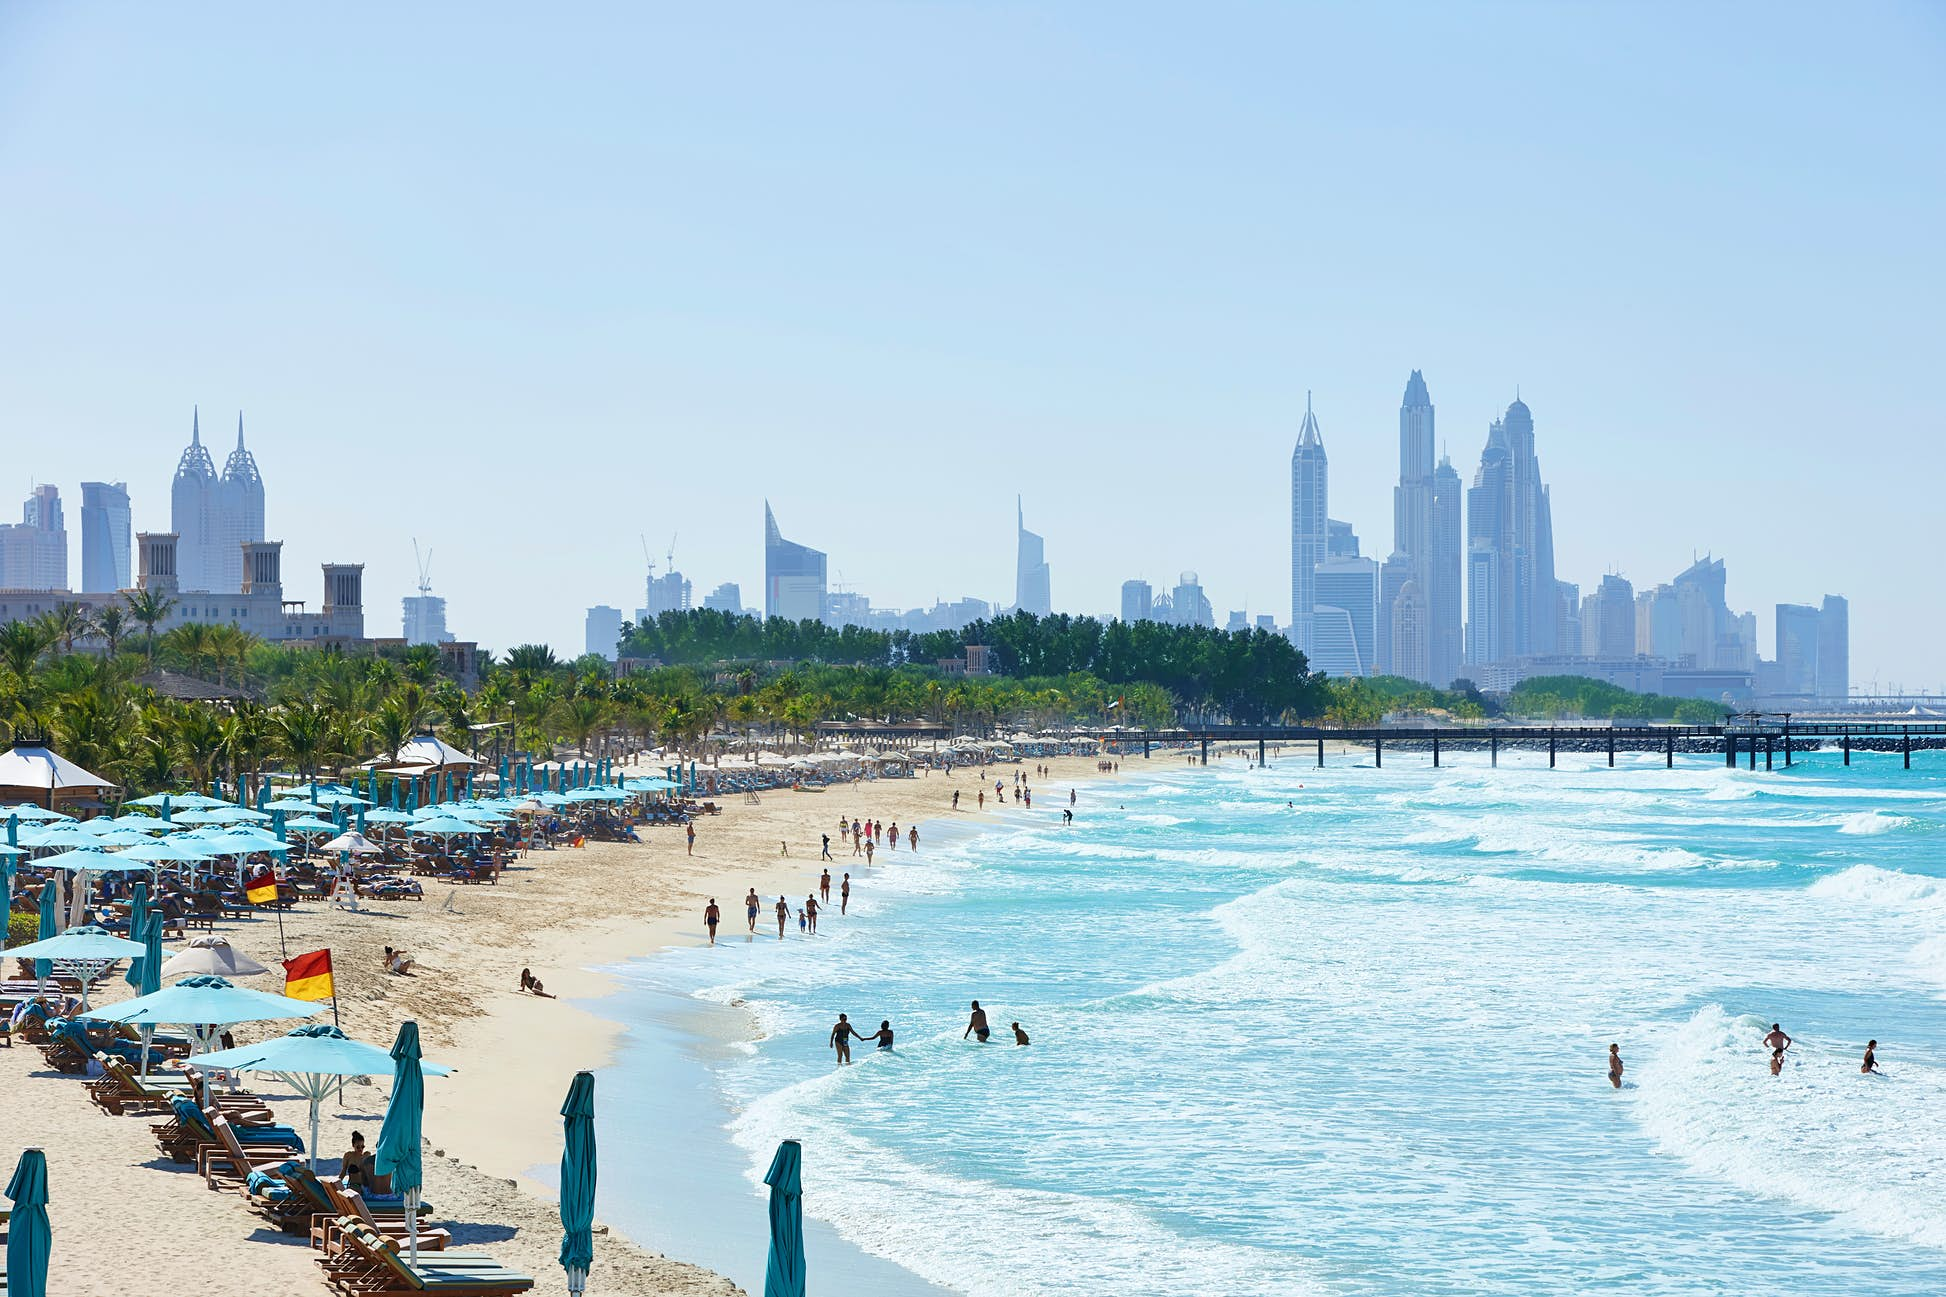 People in the water at Jumeirah Beach with the Dubai skyline in the distance ©R.A.R. de Bruijn Holding BV/Shutterstock